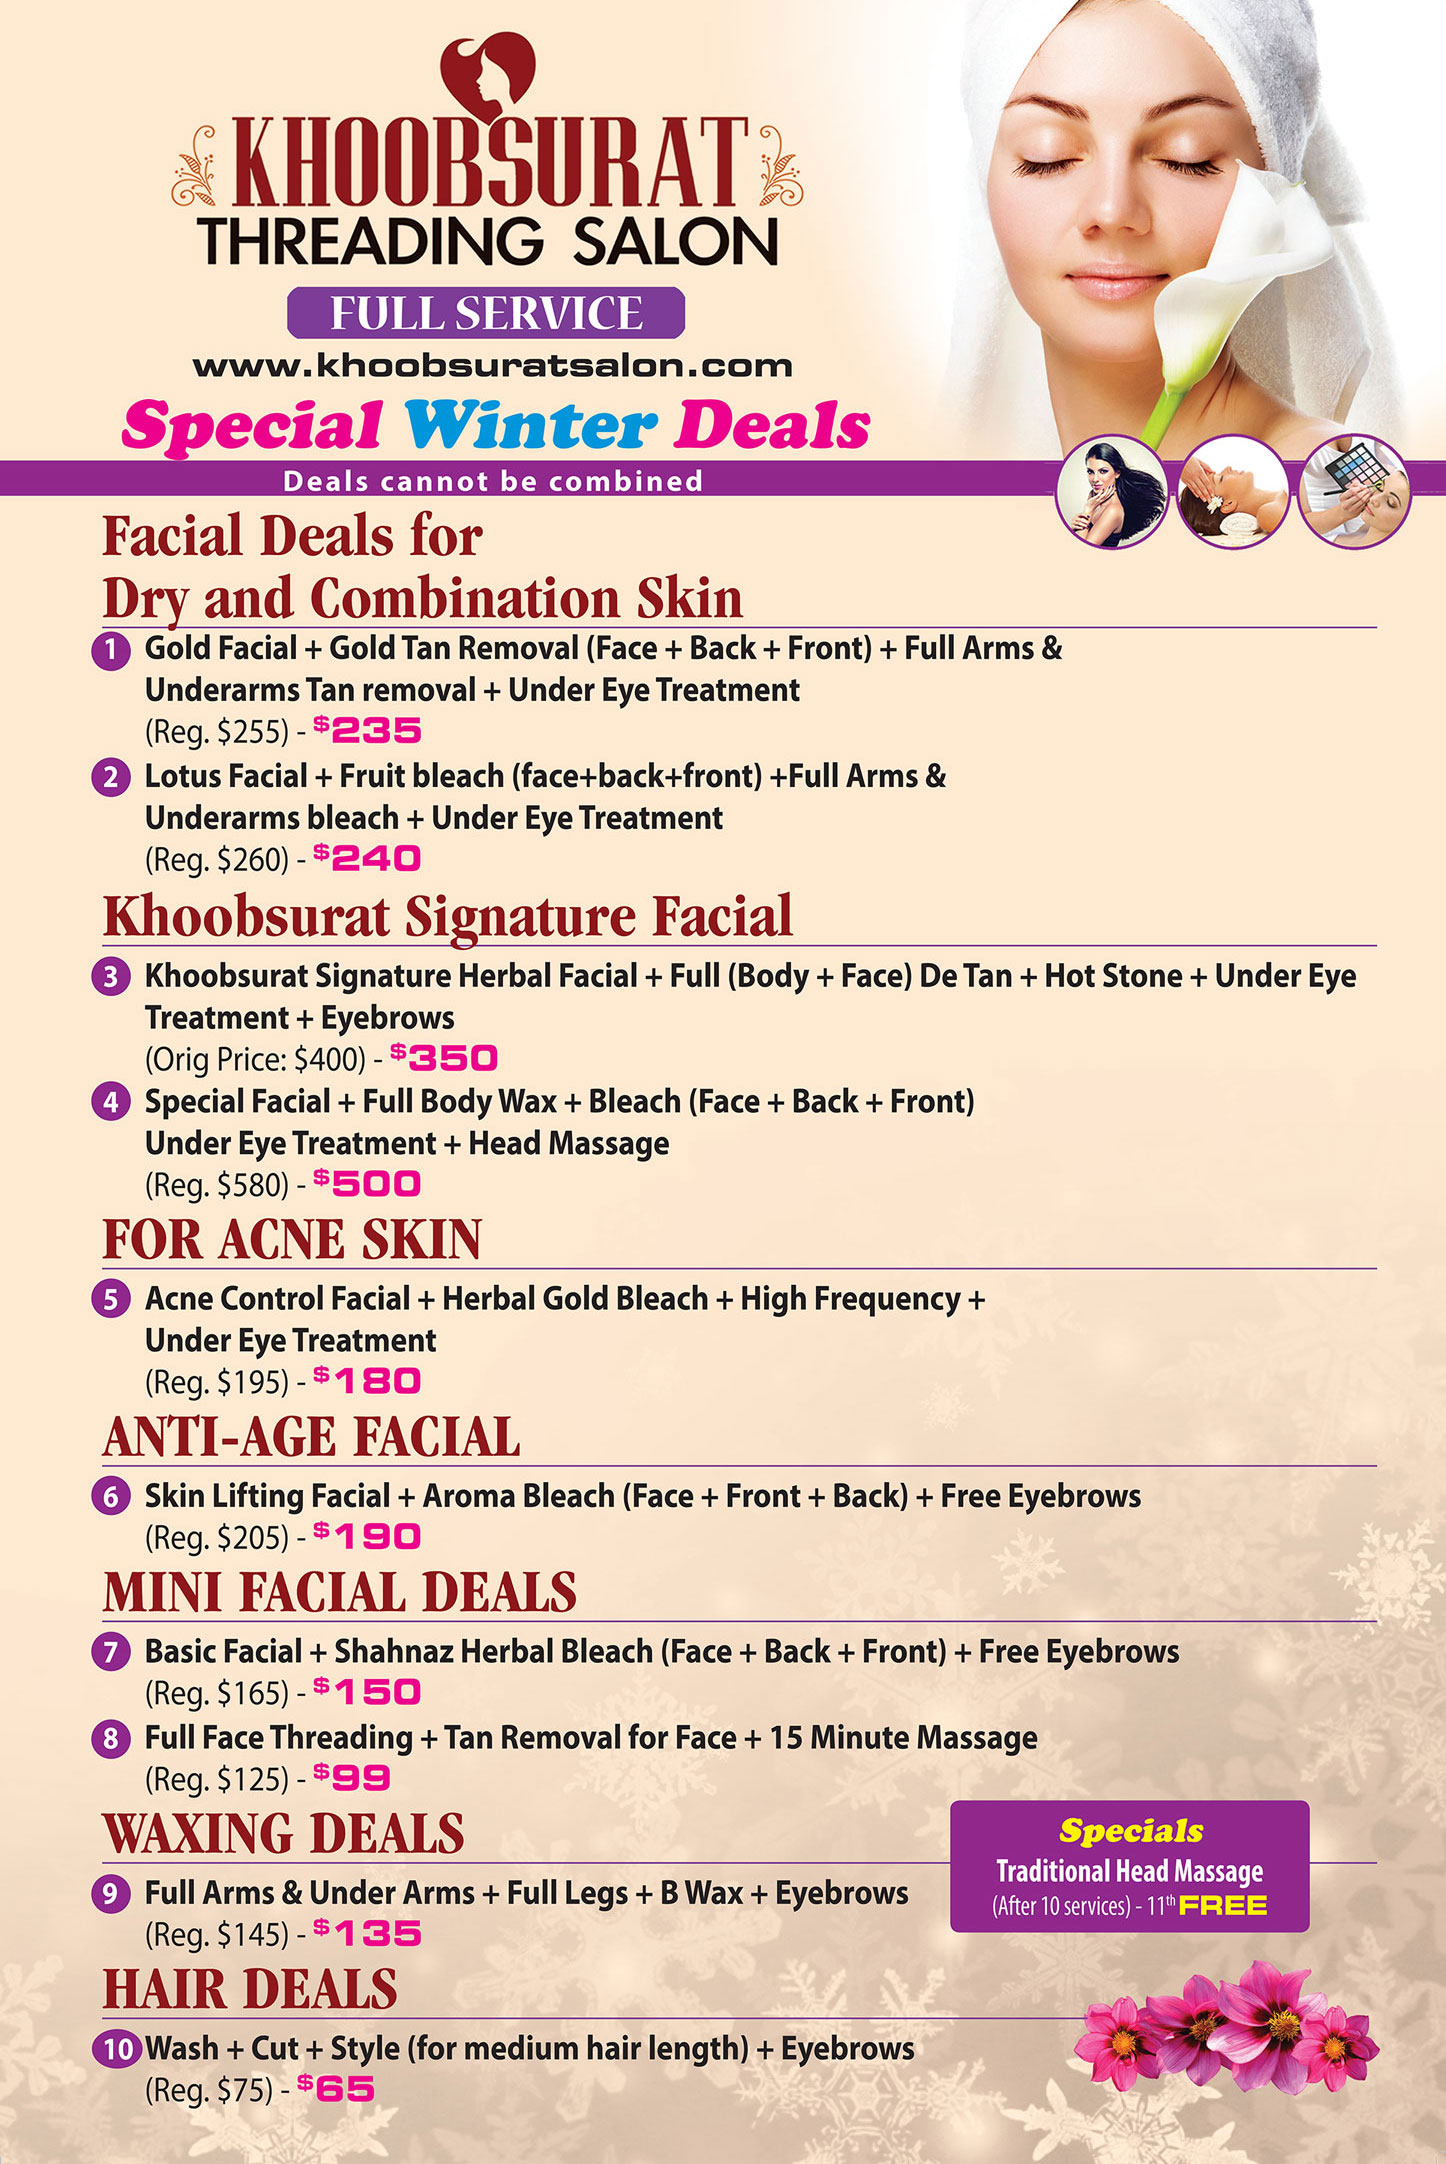 Khoobsurat Salon Winter Deals Specials 2018